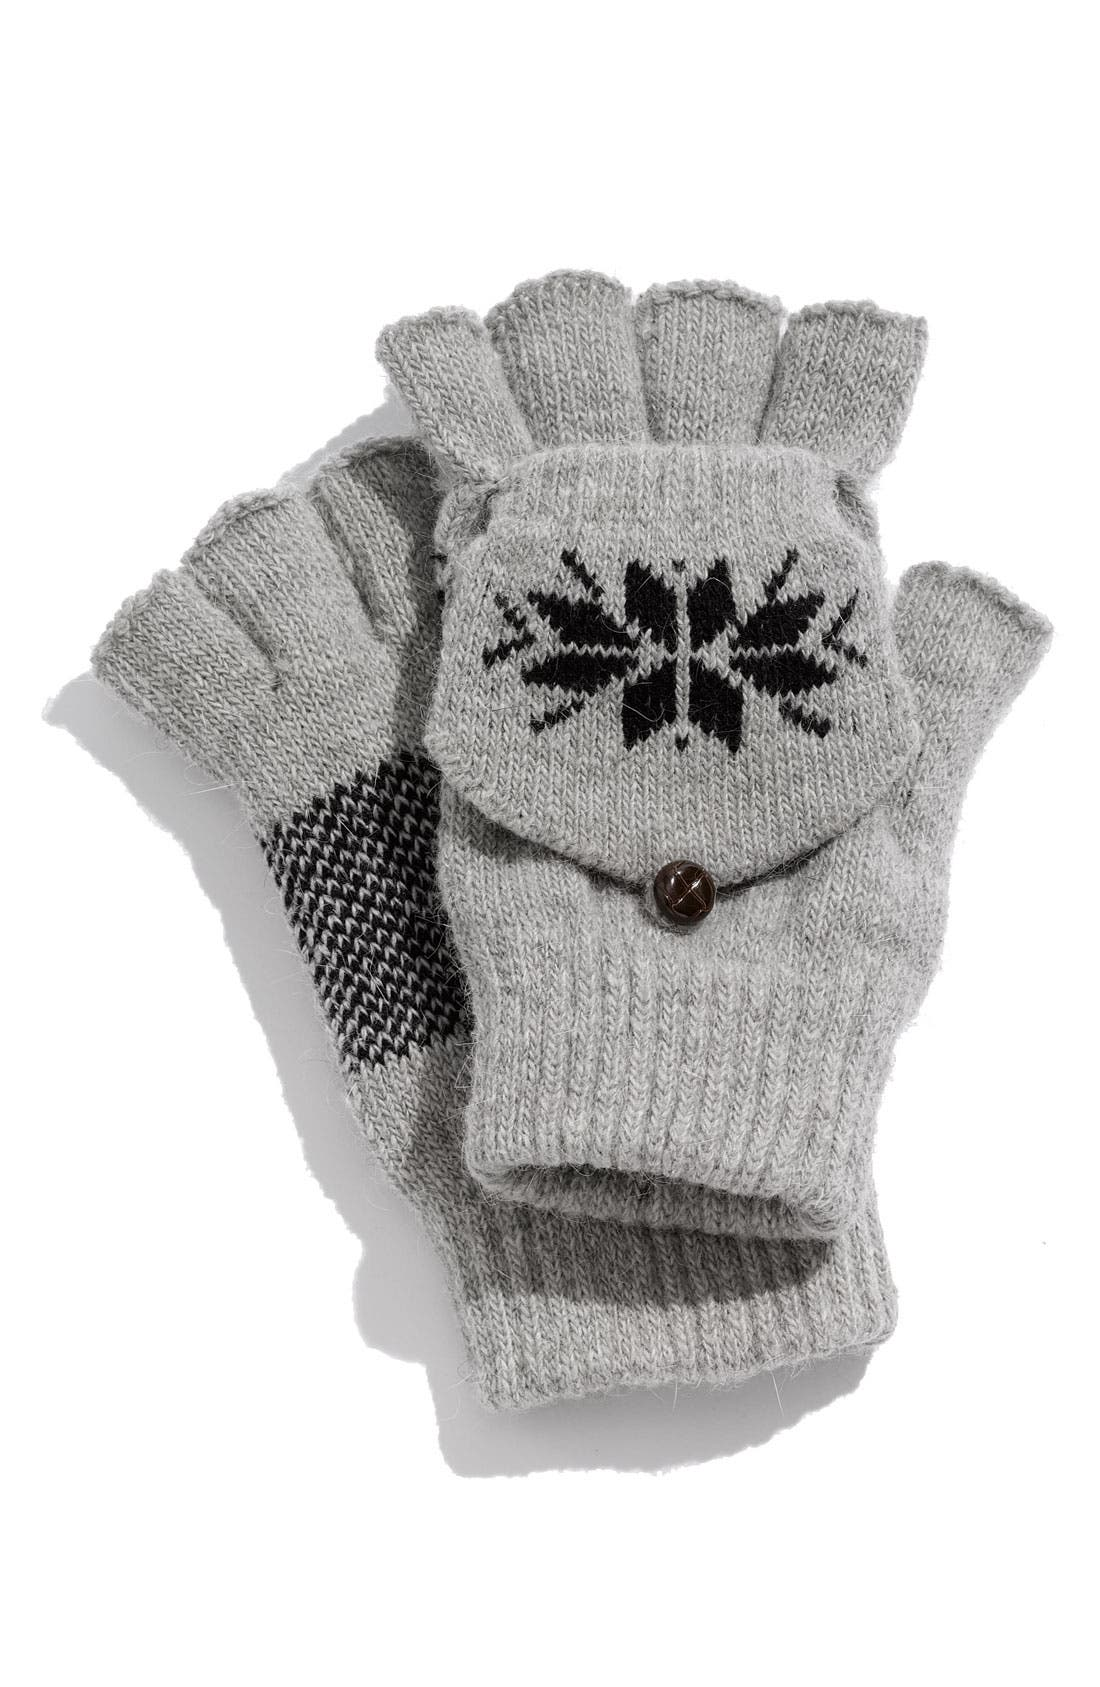 Alternate Image 1 Selected - The Accessory Collective Nordic Convertible Fingerless Gloves